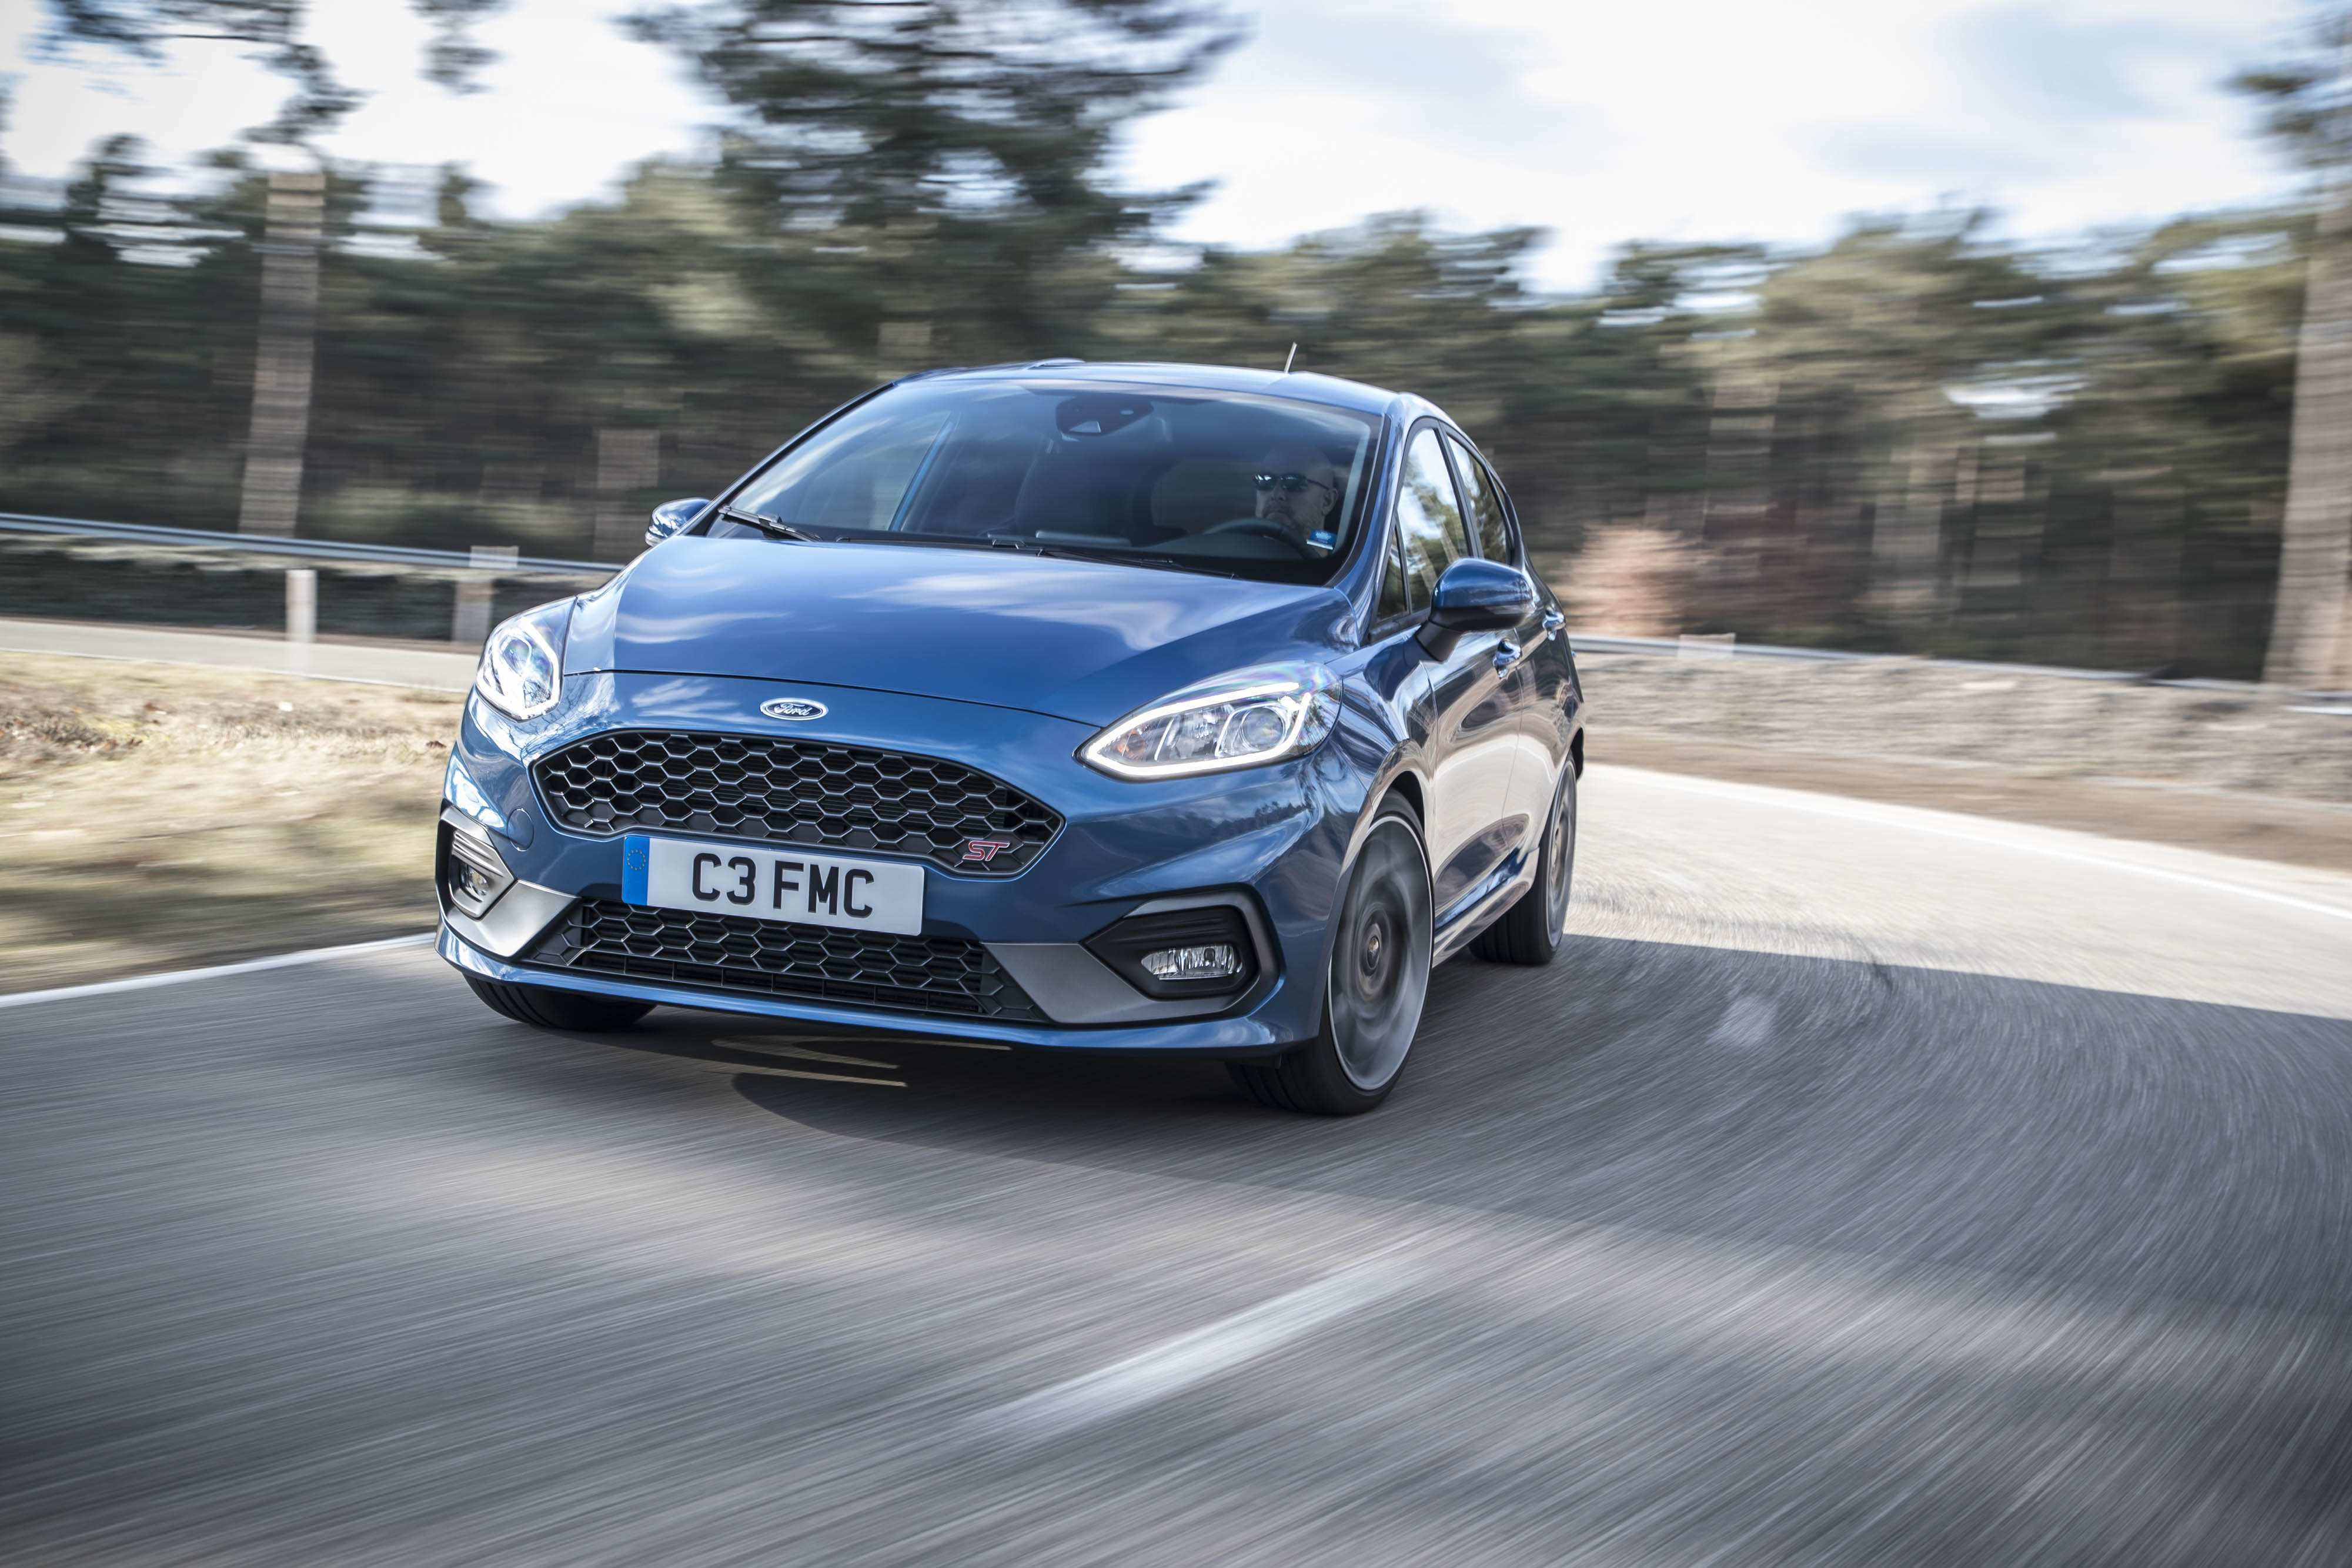 43 New 2020 Fiesta St Pictures